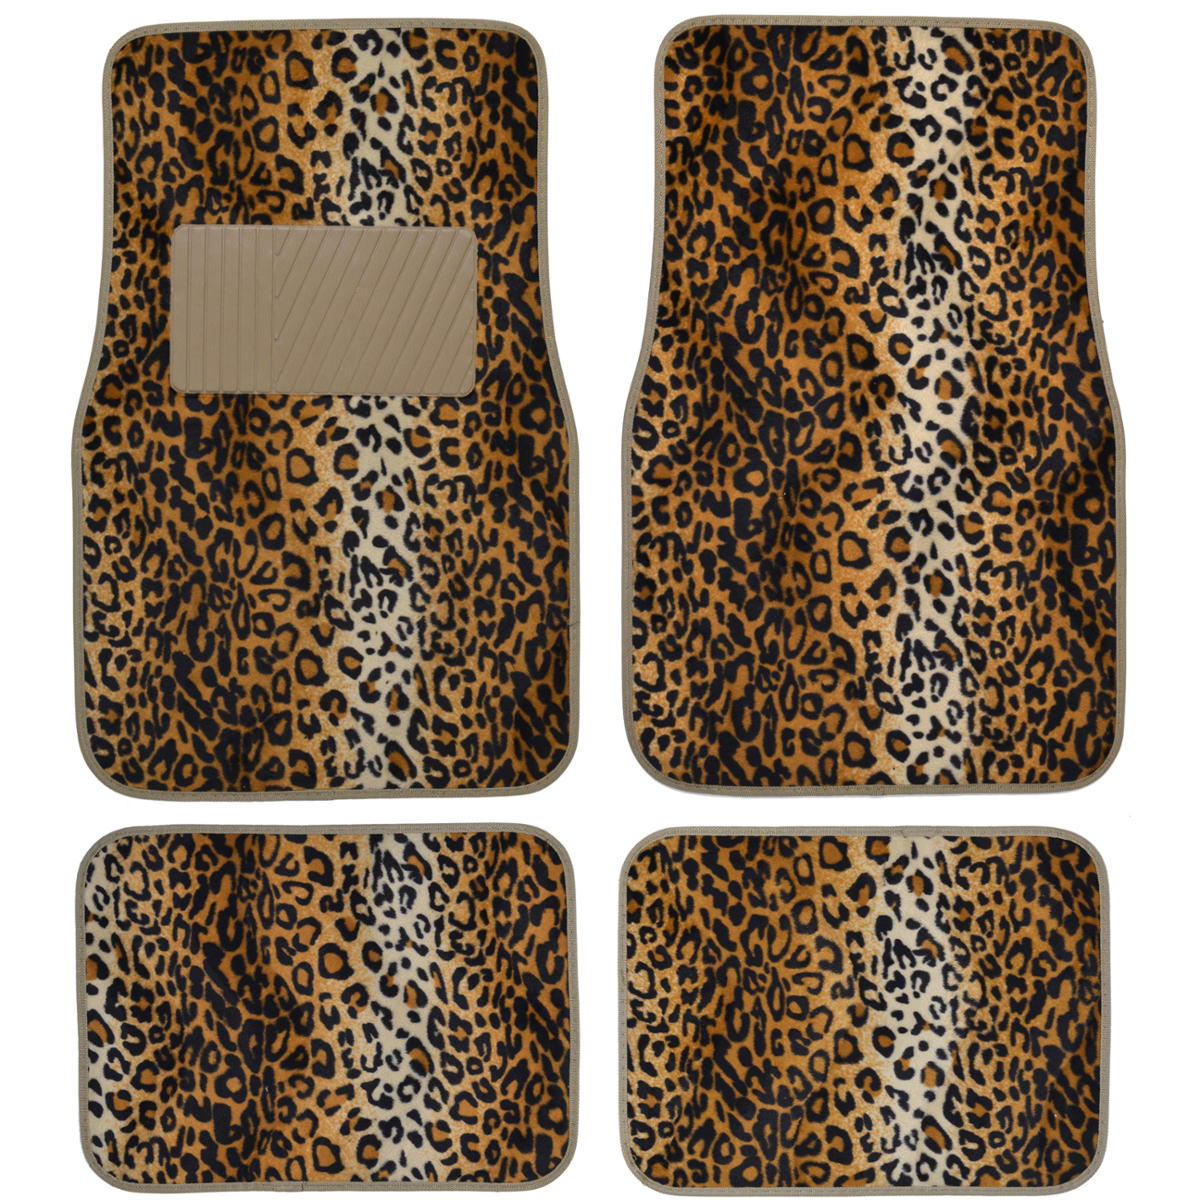 Supreme Leopard Beige 4 Piece Plush High Quality Car